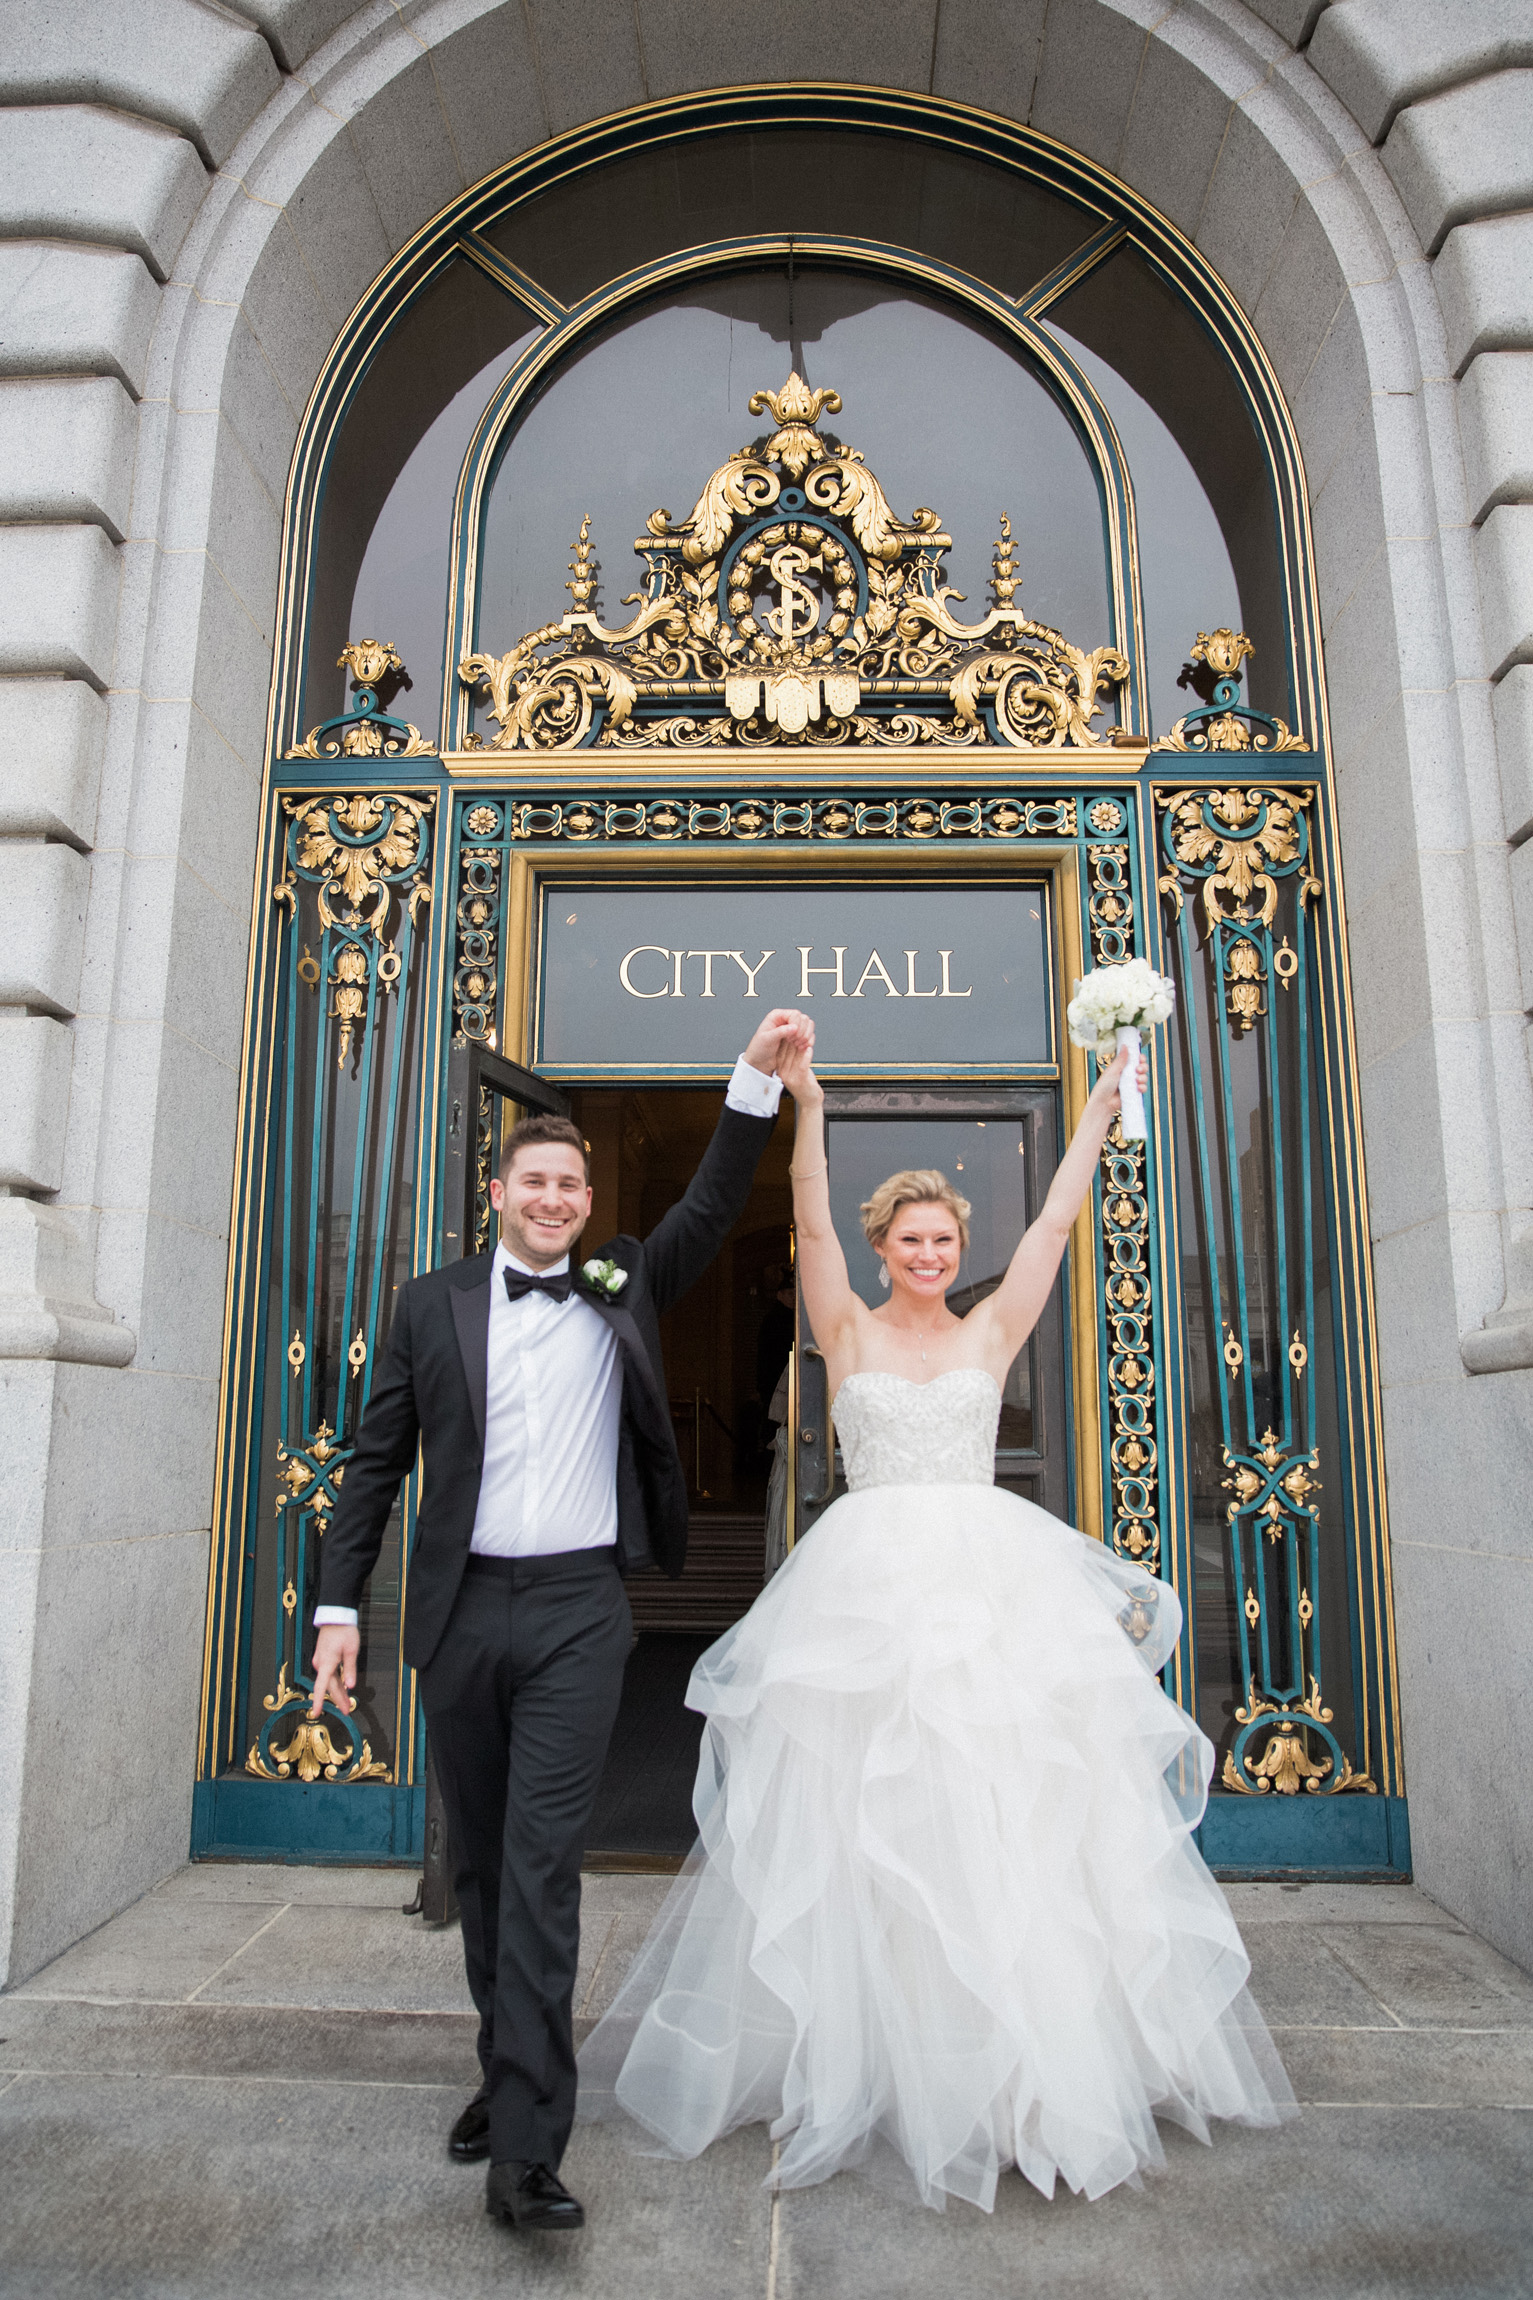 014_janaeshieldsphotography_sanfrancisco_cityhall_weddings.jpg